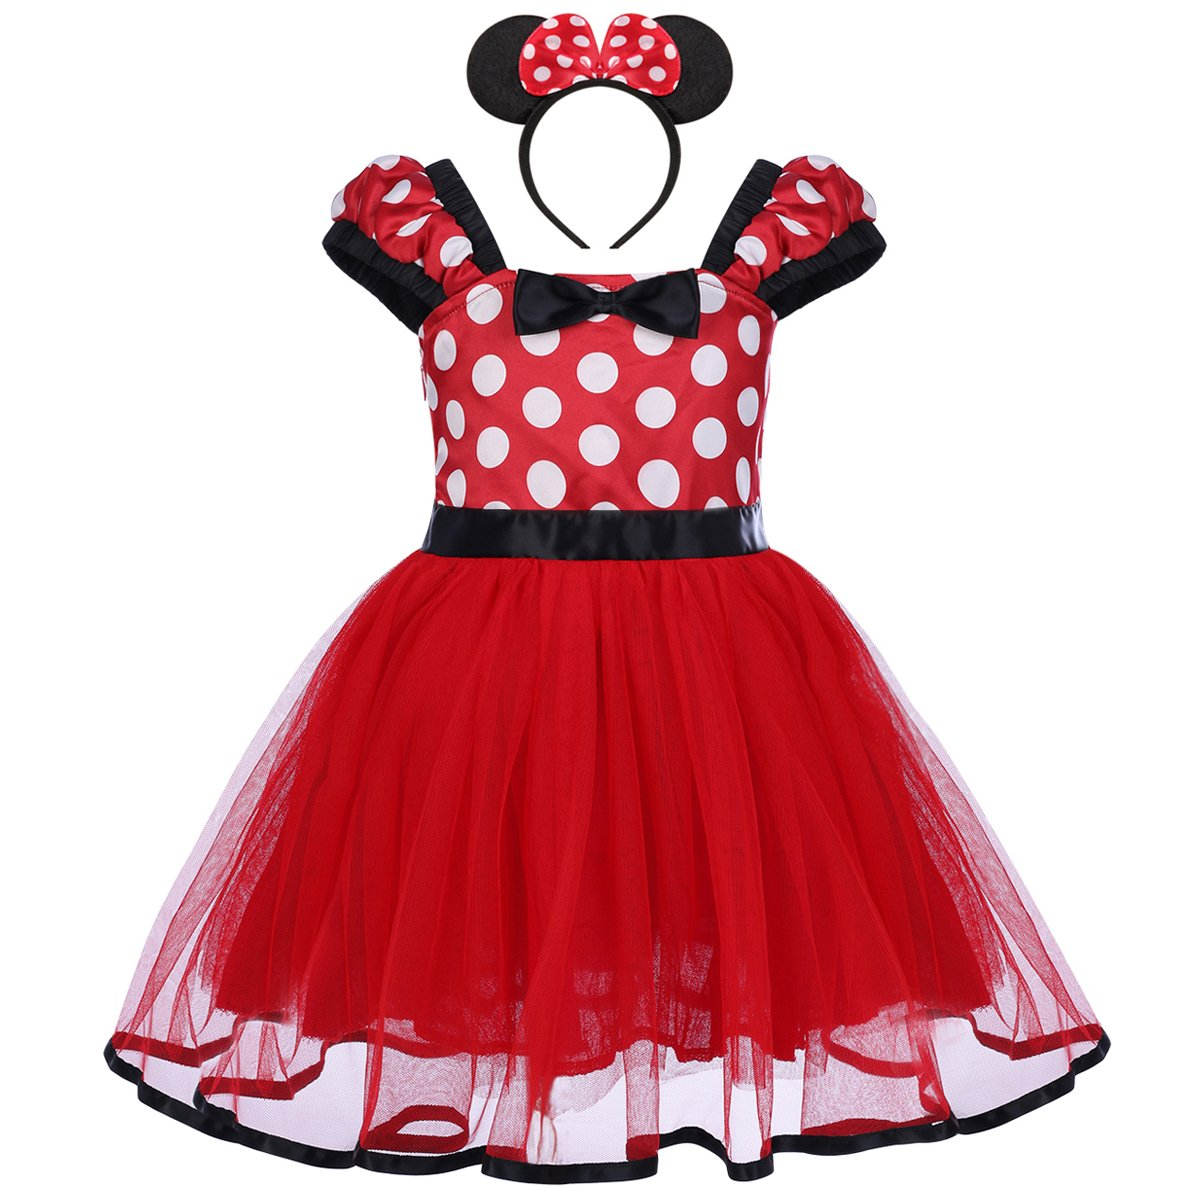 FYMNSI Baby Girls Toddlers Polka Dots Princess Ballet Tutu Dress Birthday Party Pageant Dress up Costume Outfits with Bowknot Mouse Ears Headband Red 4 Years